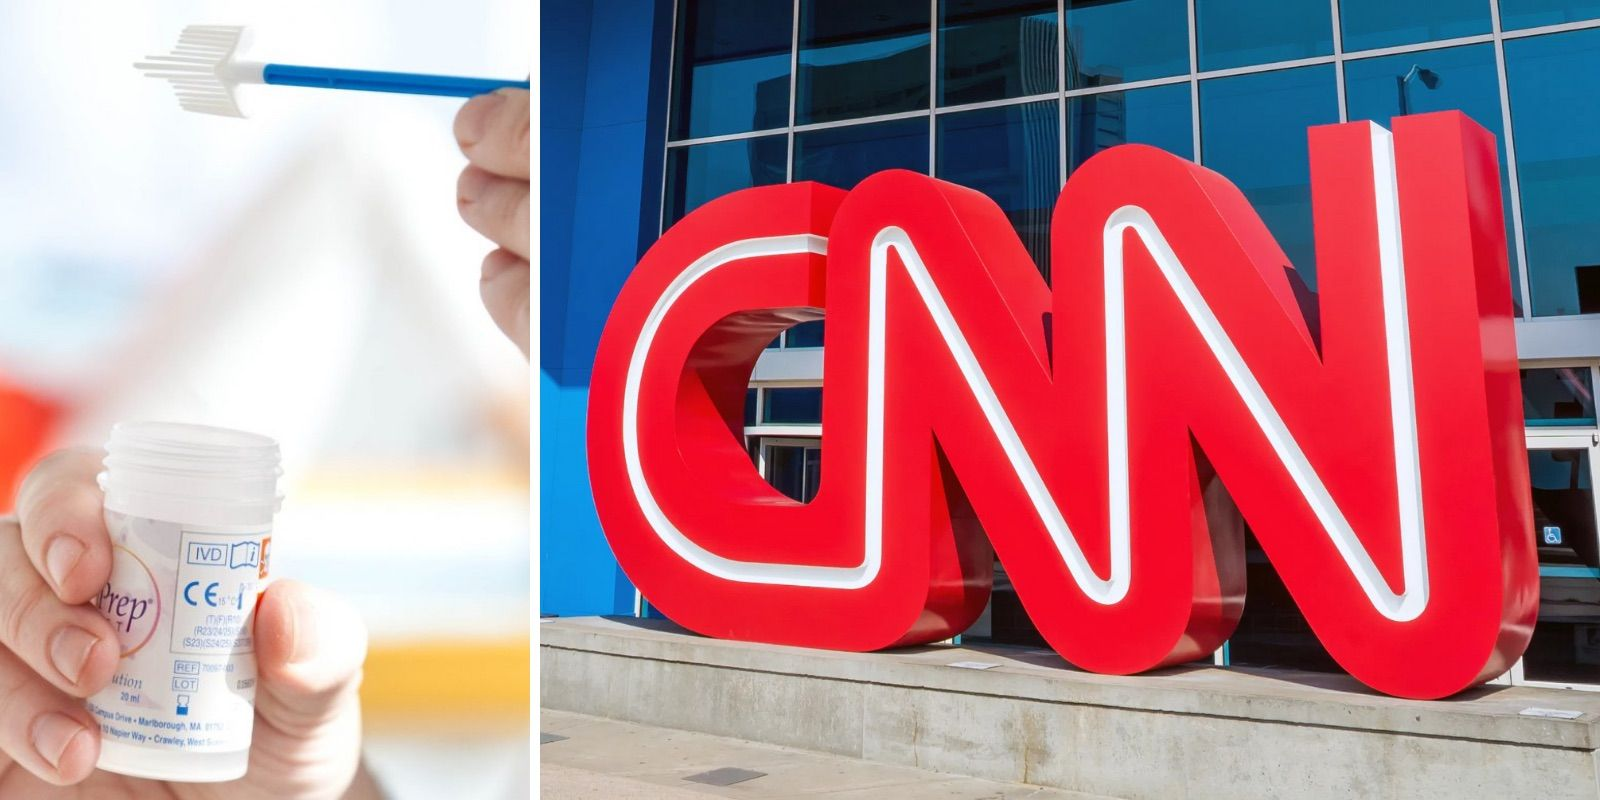 CNN says that cervical cancer screening is for 'individuals with a cervix,' but prostate cancer screening is for 'men'